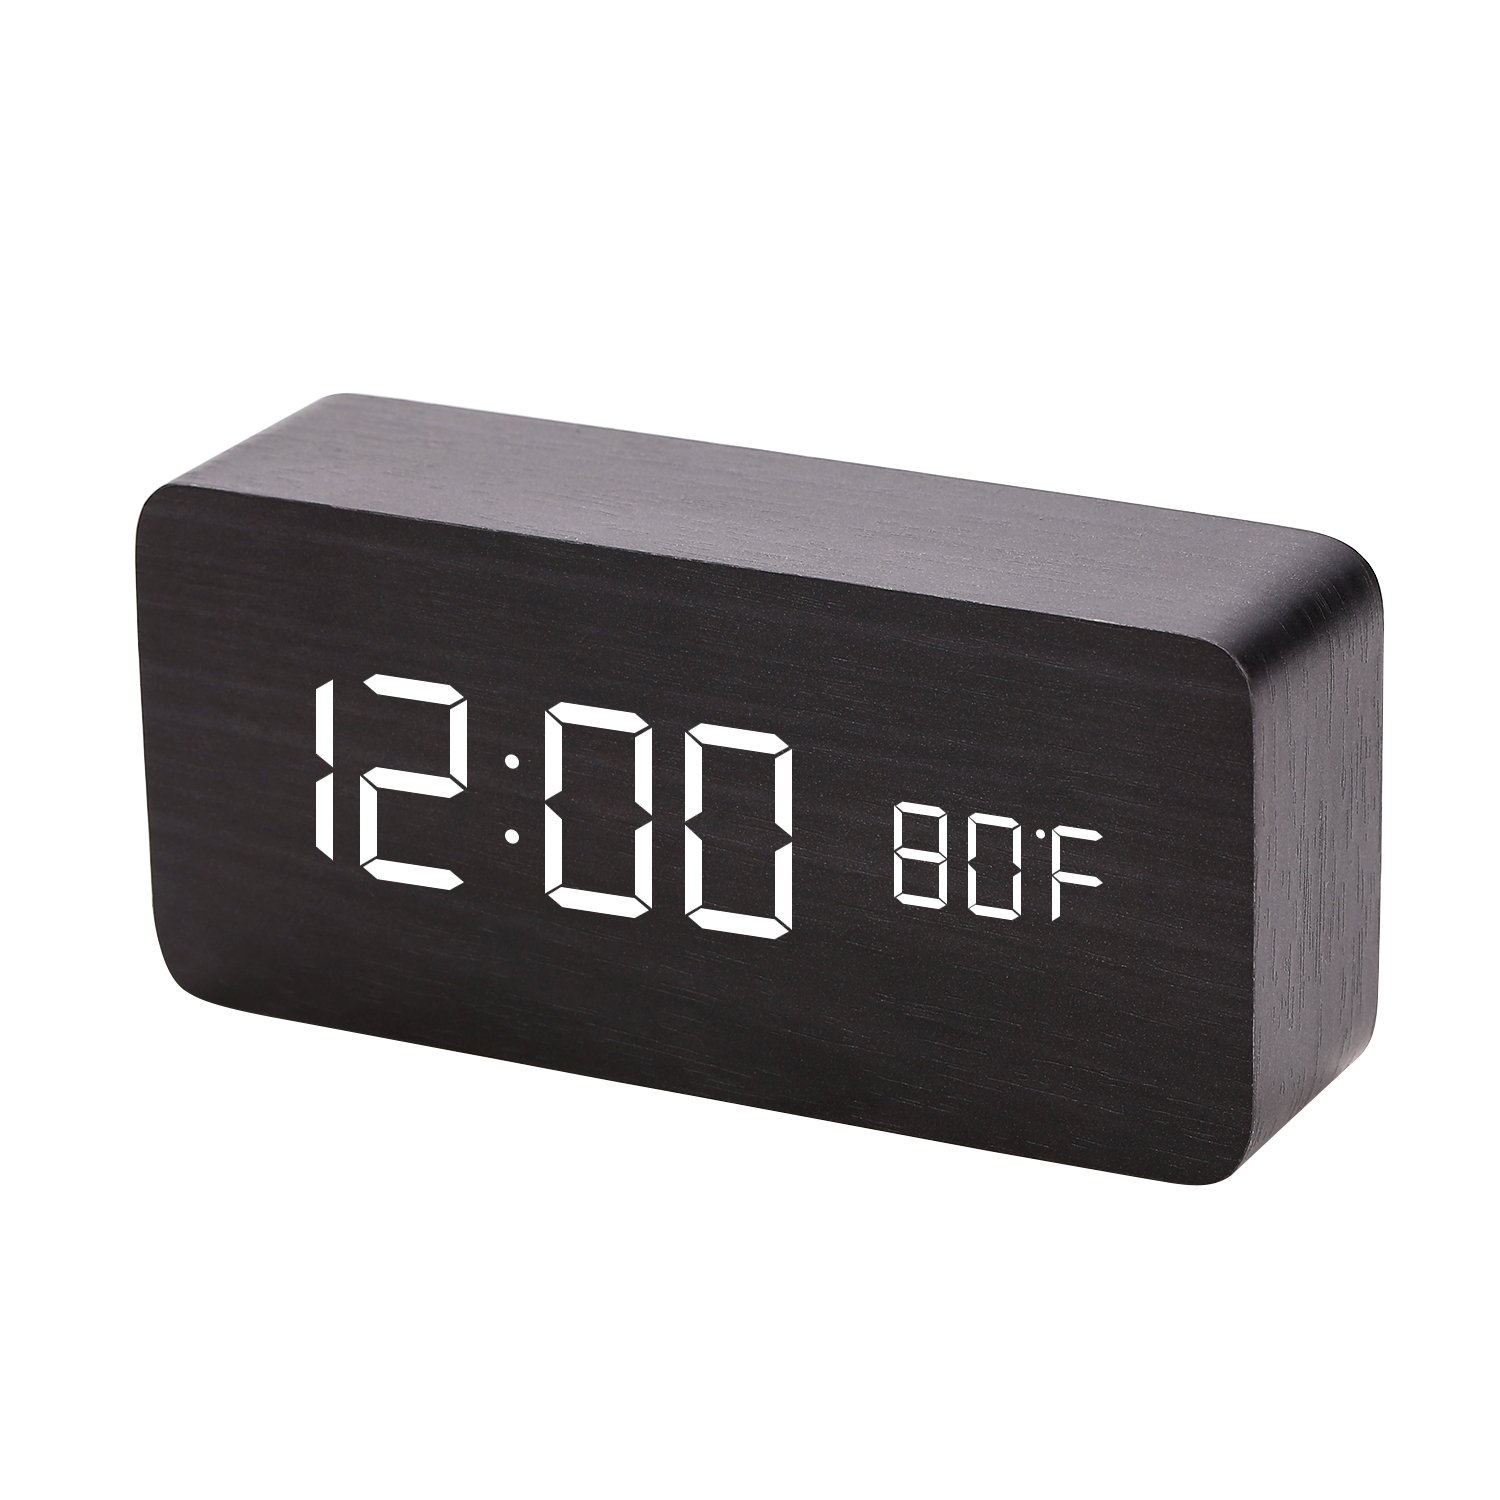 SULCMAG Modern Simplicity Wood Digital Clock with Three Alarm Sets & Date LED Display &3 Levels Brightness Voice Control for Home Bedroom Office .